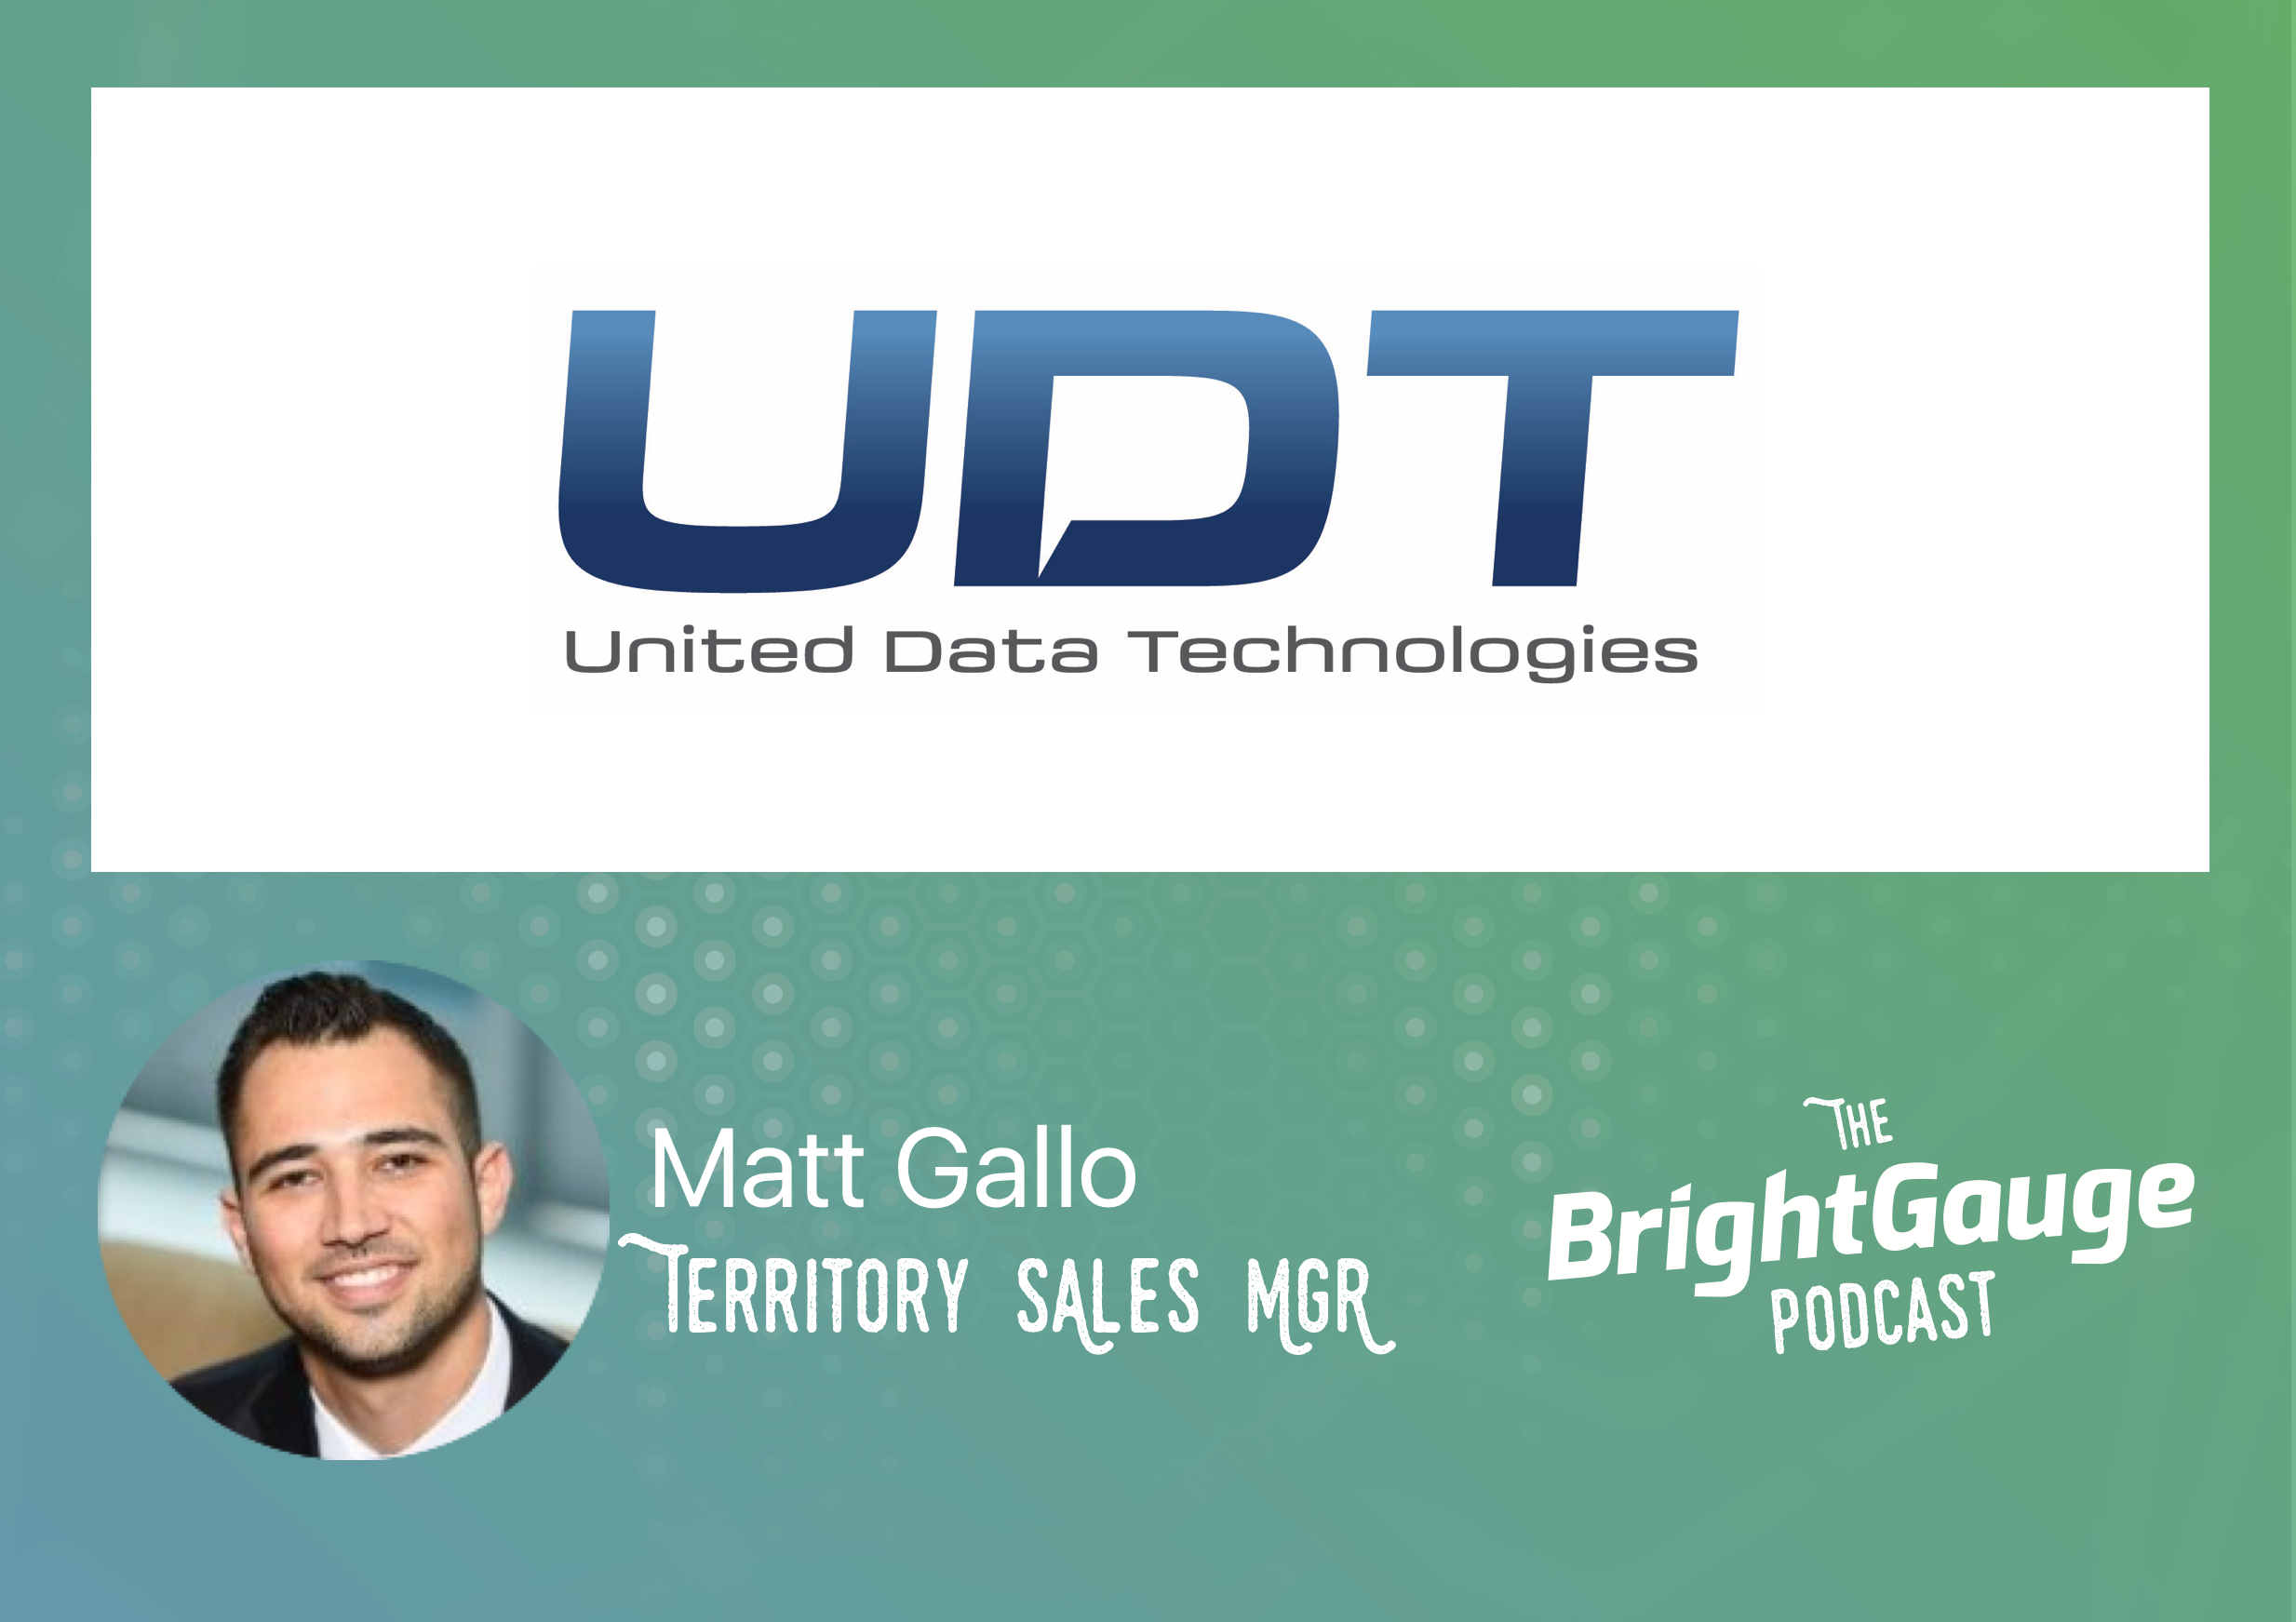 [Podcast] Episode 3 with Matt Gallo of United Data Technologies